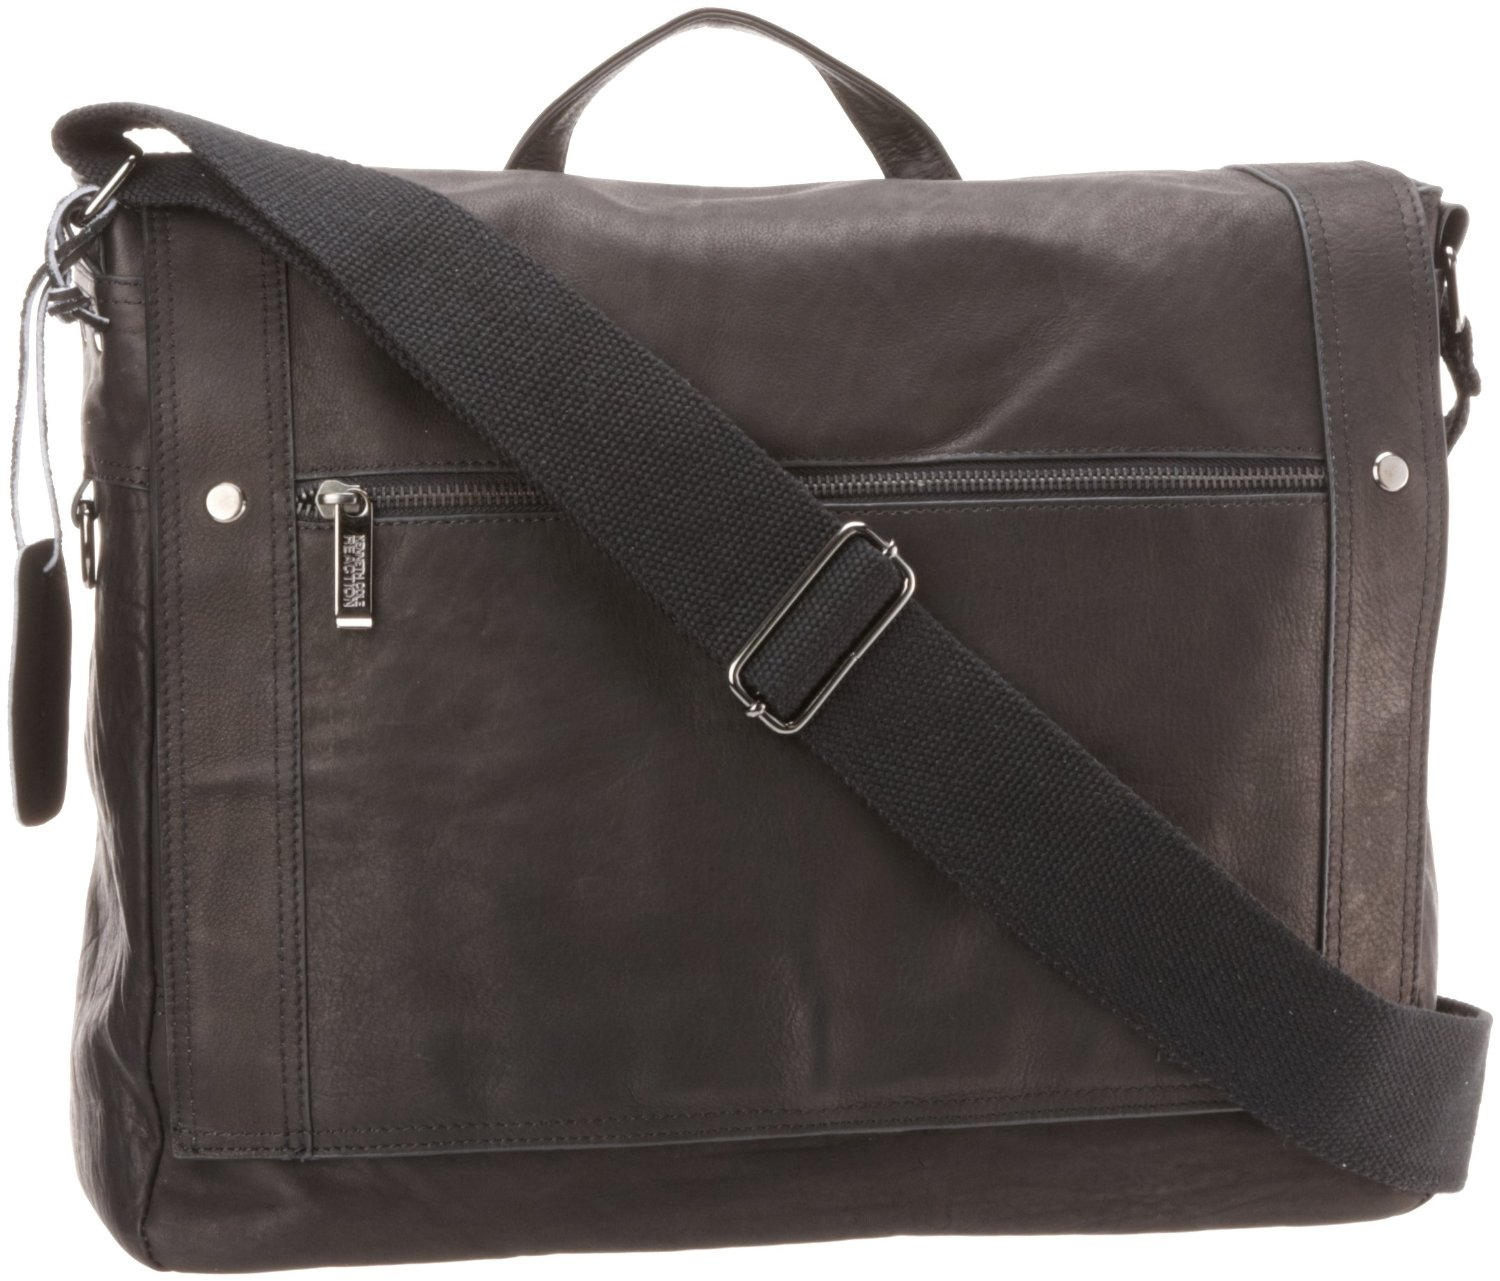 Kenneth Cole REACTION Busi-Mess Essentials Bag Black The price is $48.99.